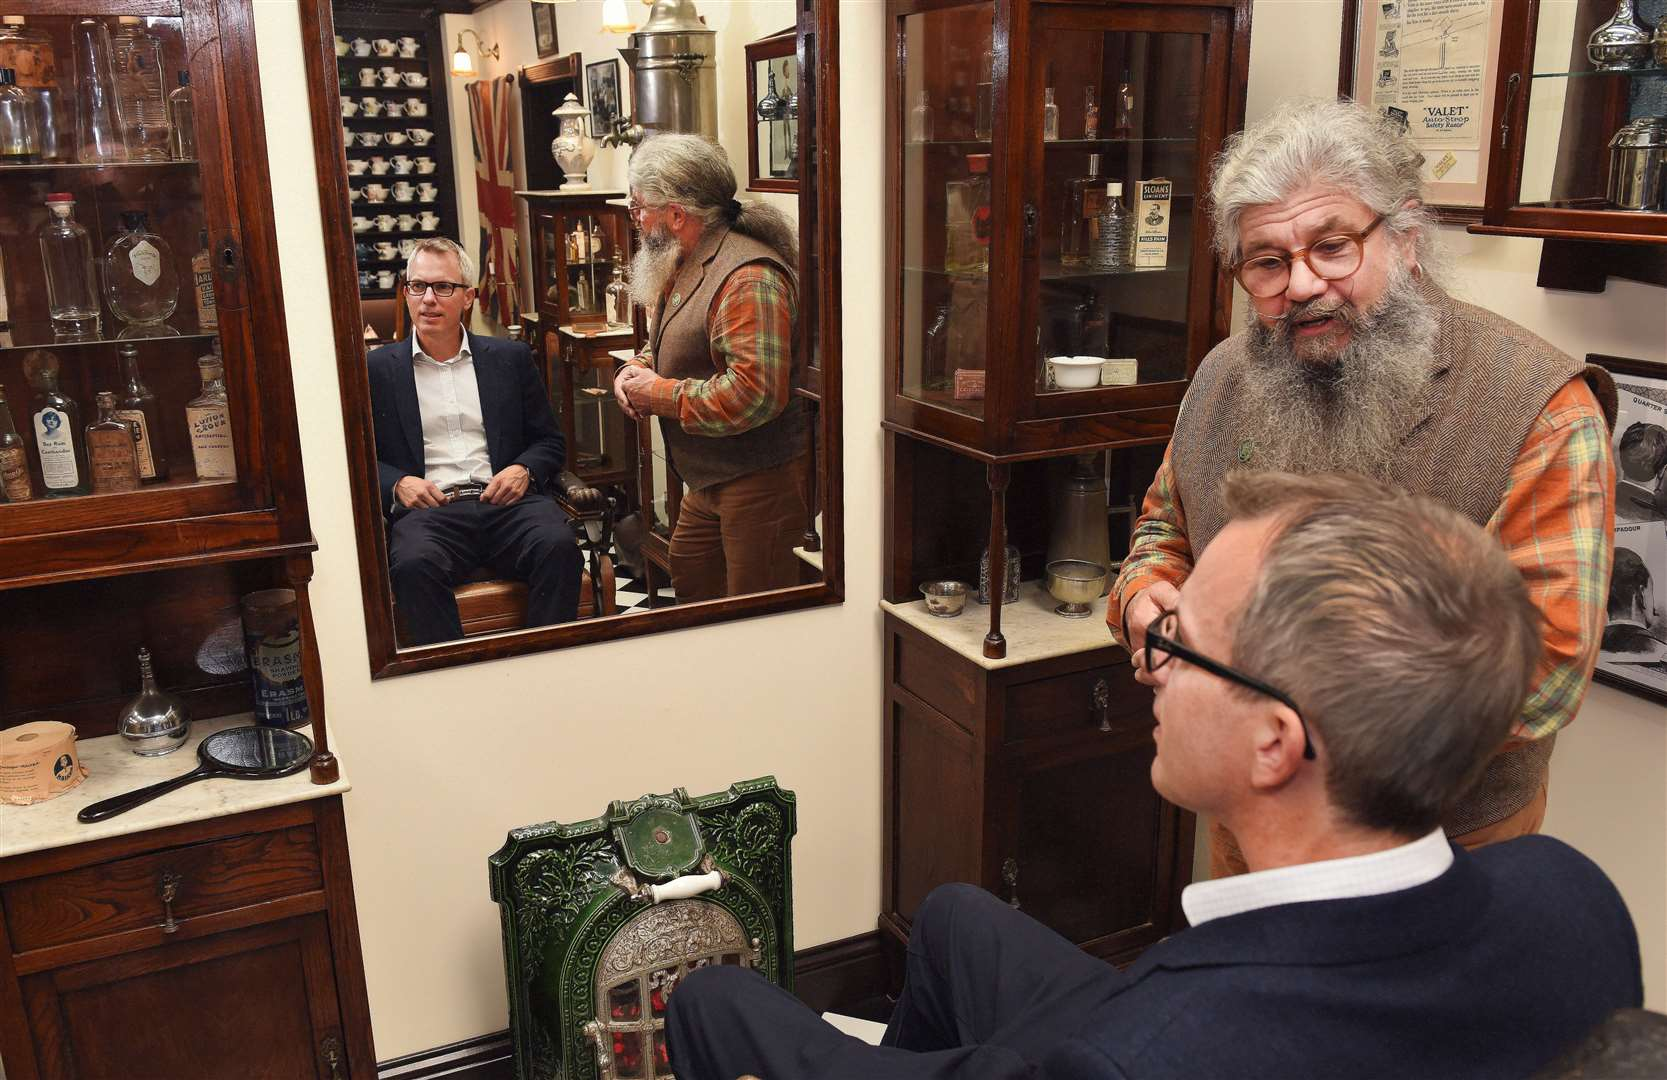 MP James Wild visiting Captain Fawsett's Emporium in King's Lynn..Richie Finney with MP James Wild and one of the museum displays. (52143711)